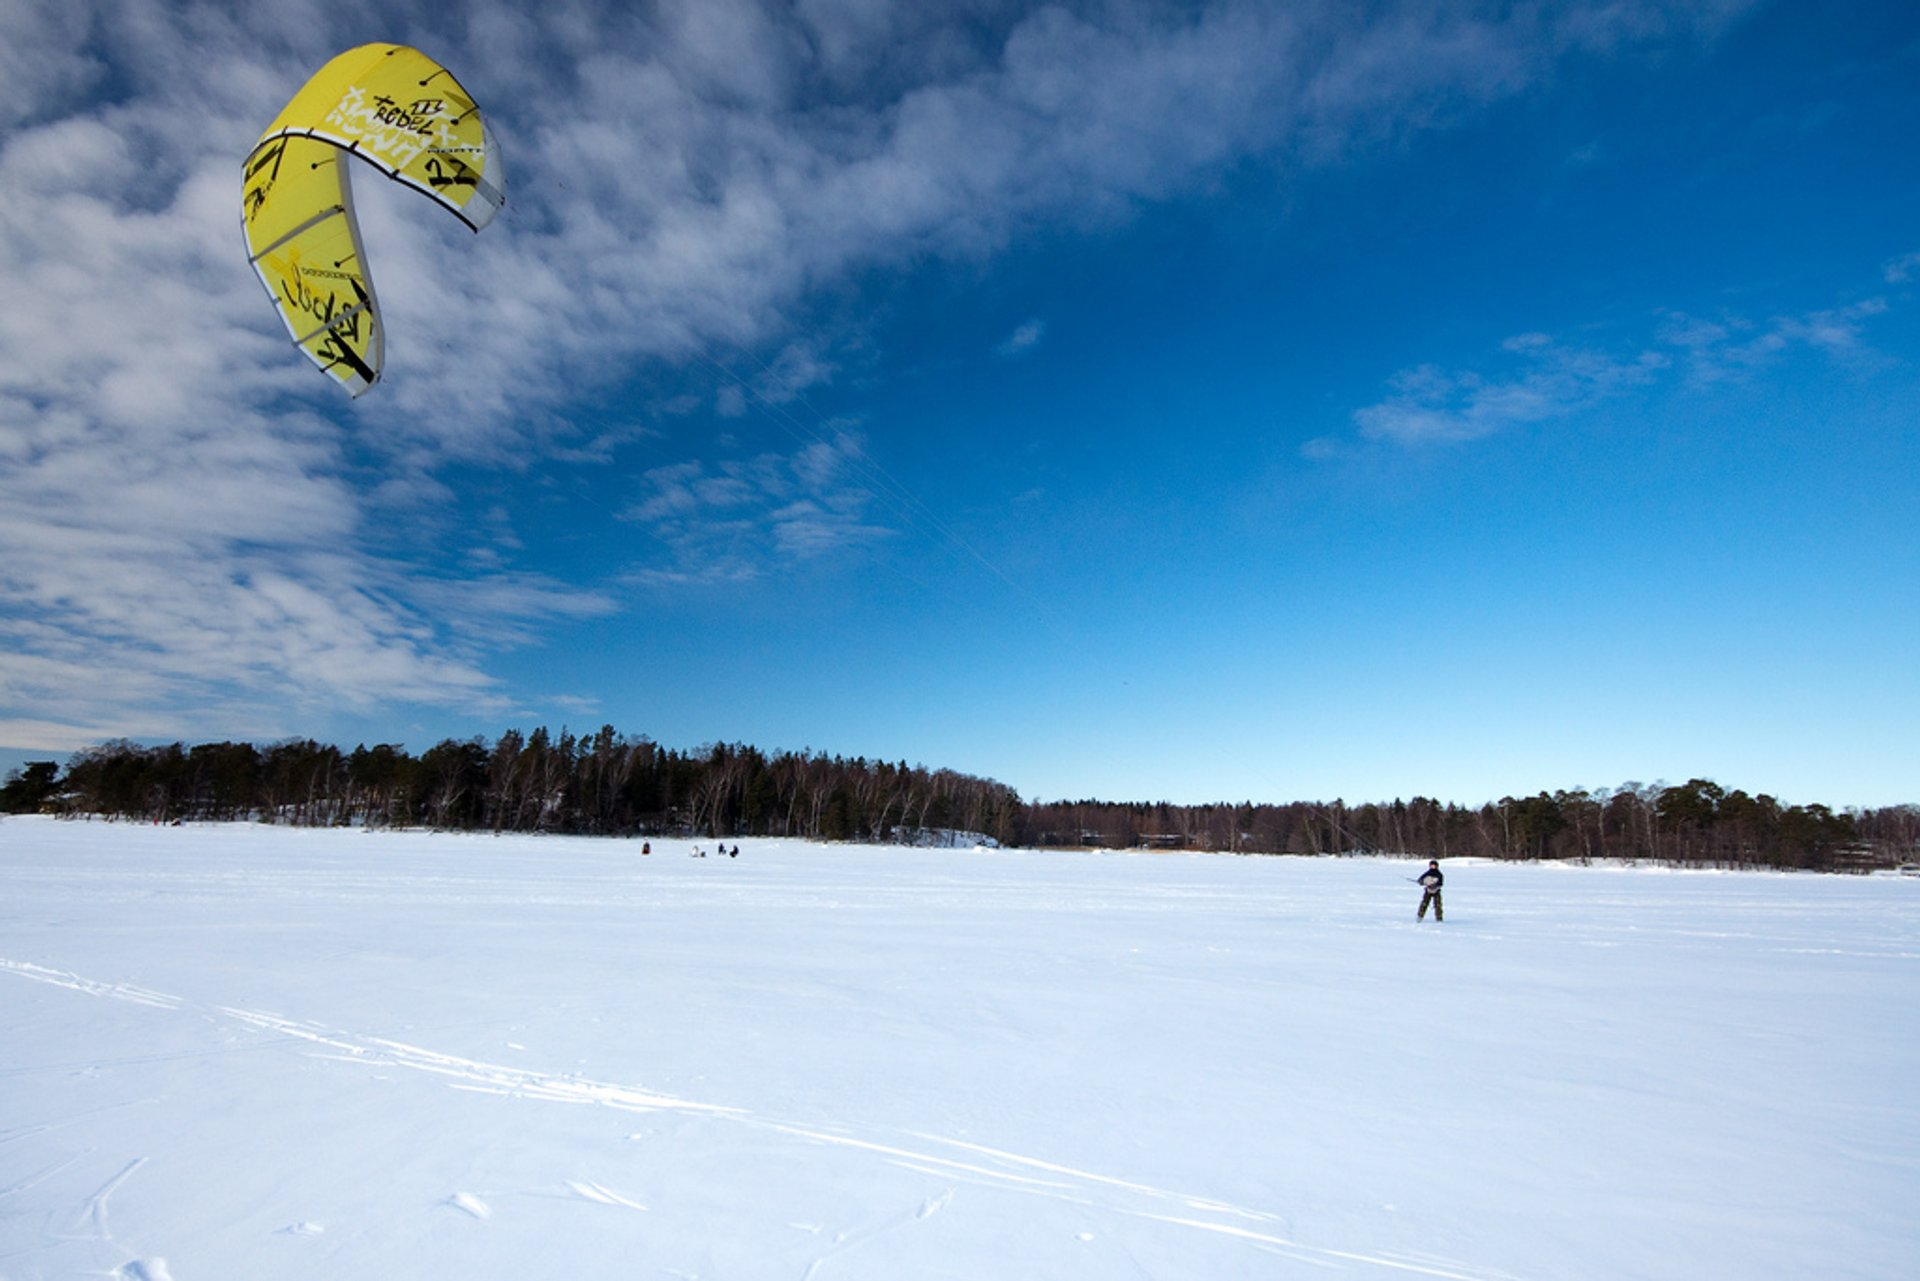 Snowkiting (Kiteskiing) in Finland - Best Season 2020